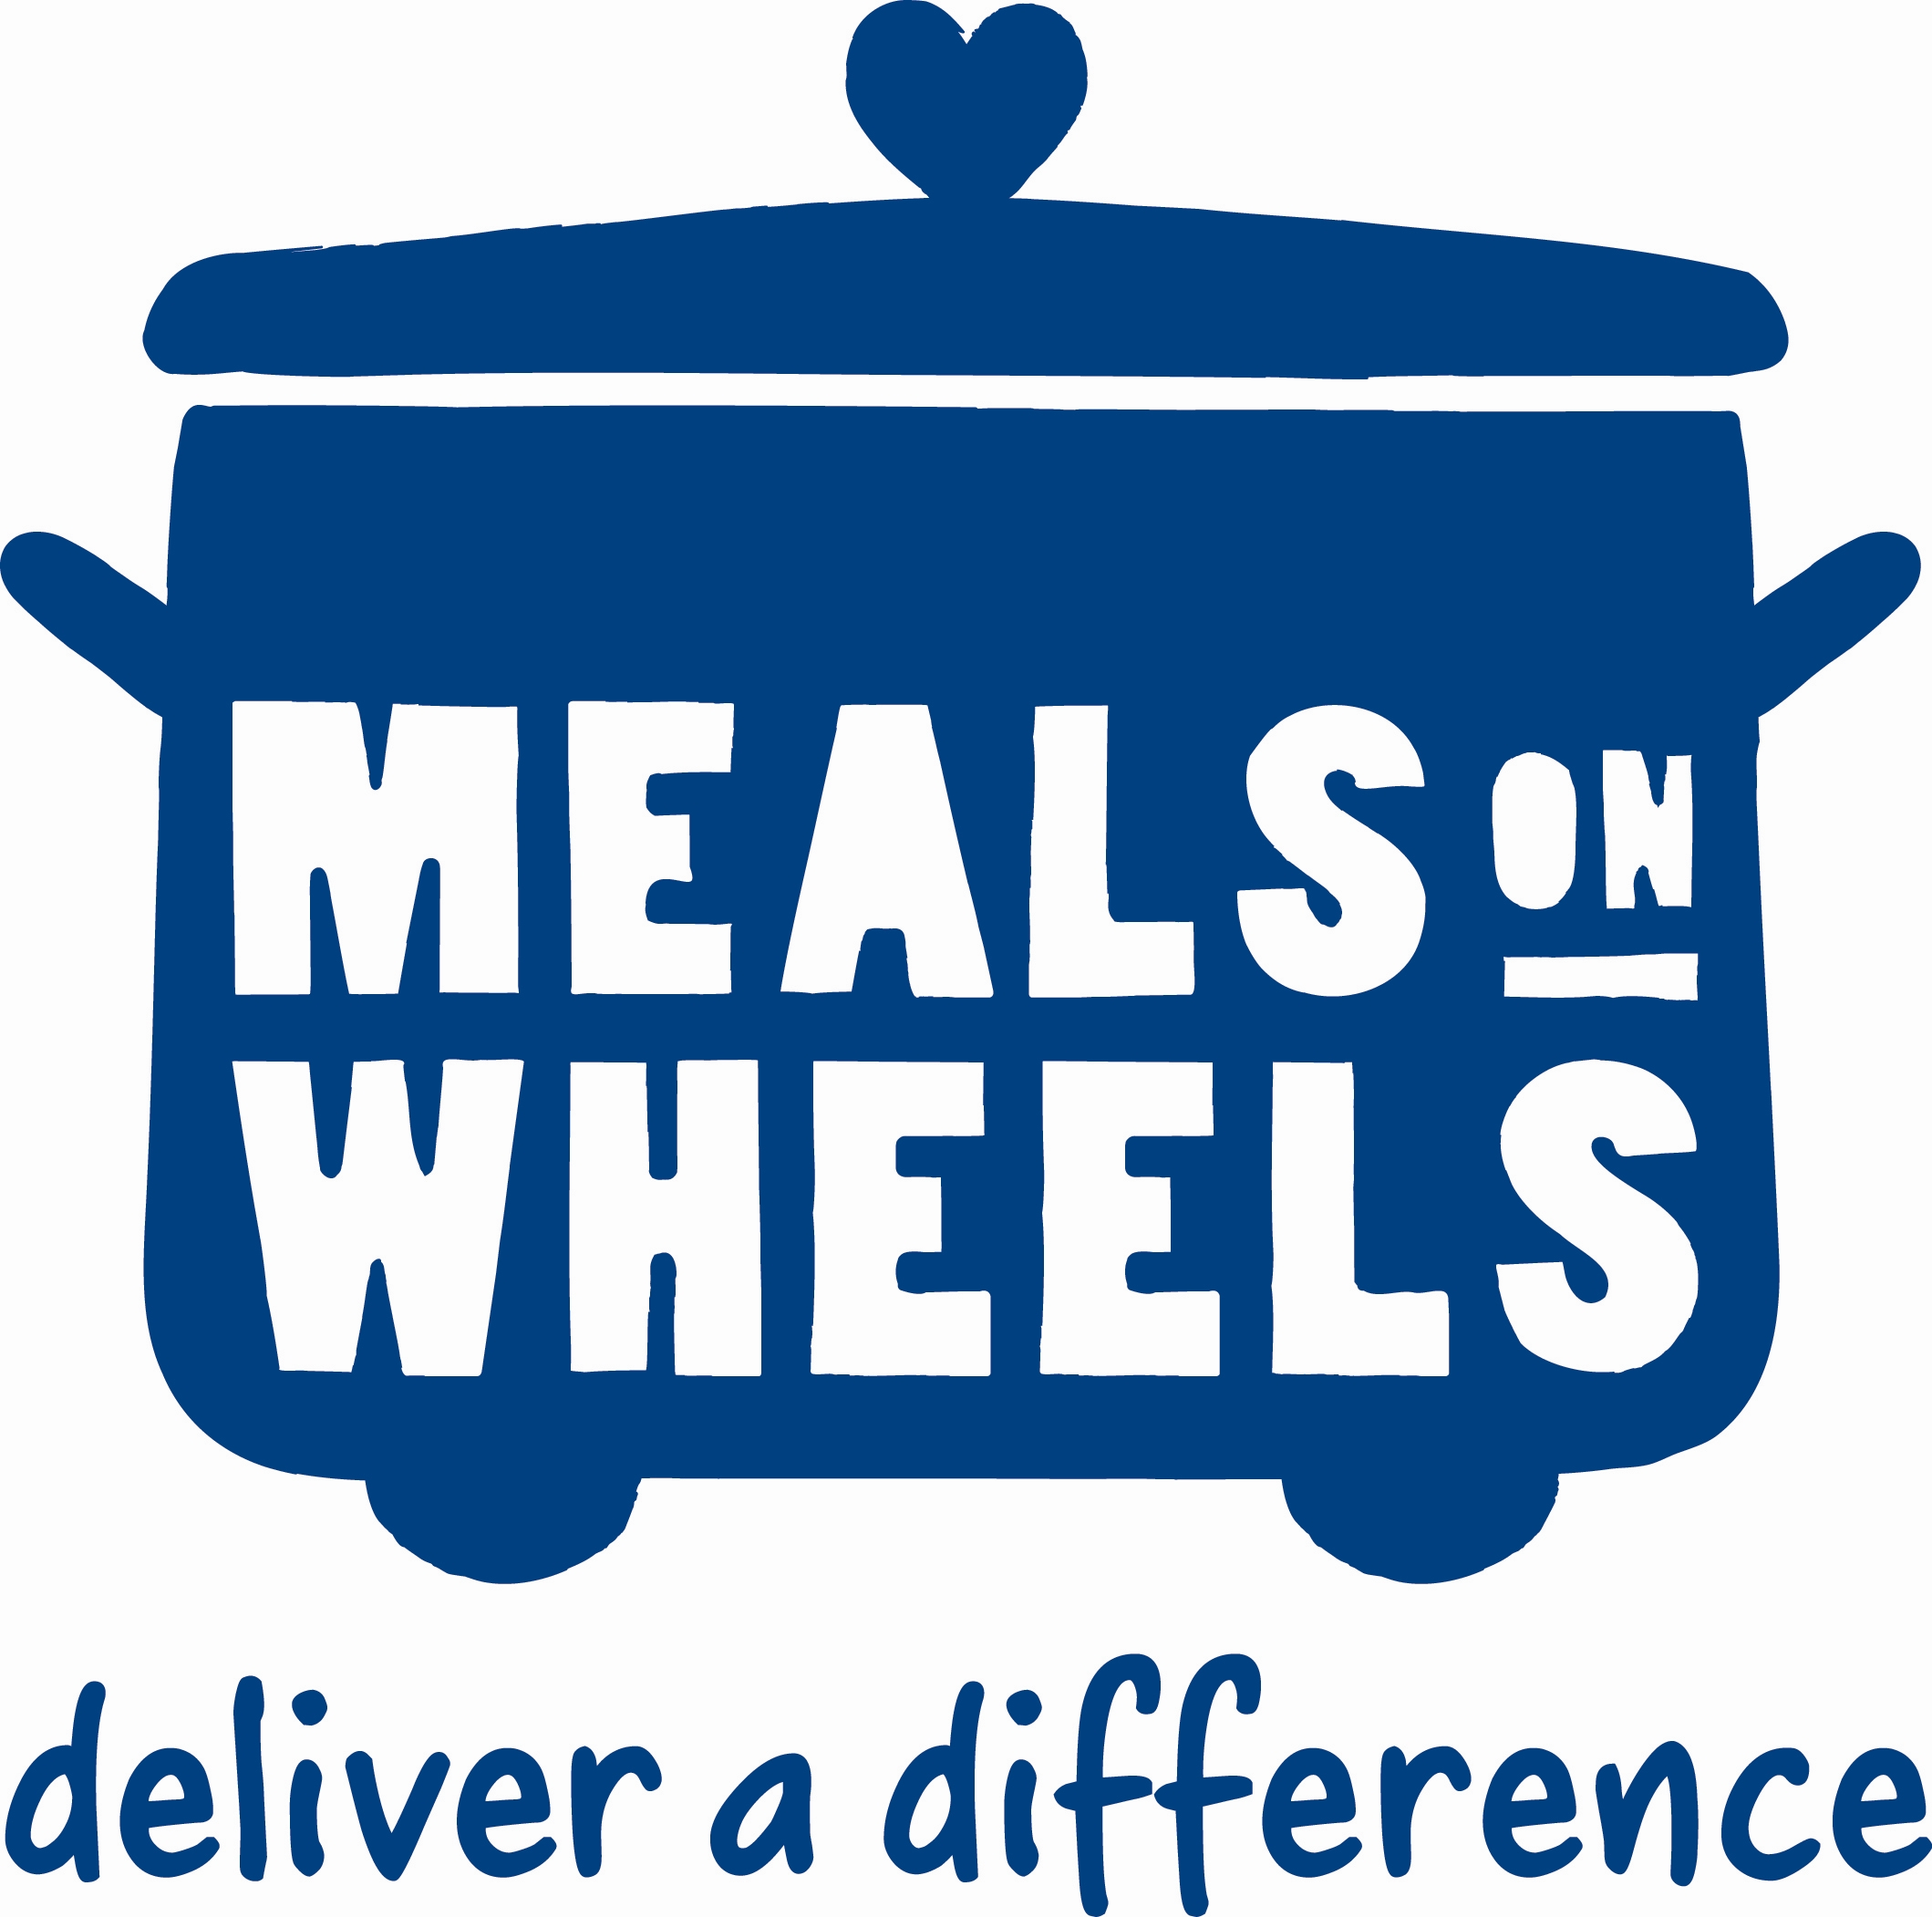 Hairy Bikers' Meals on Wheels logo